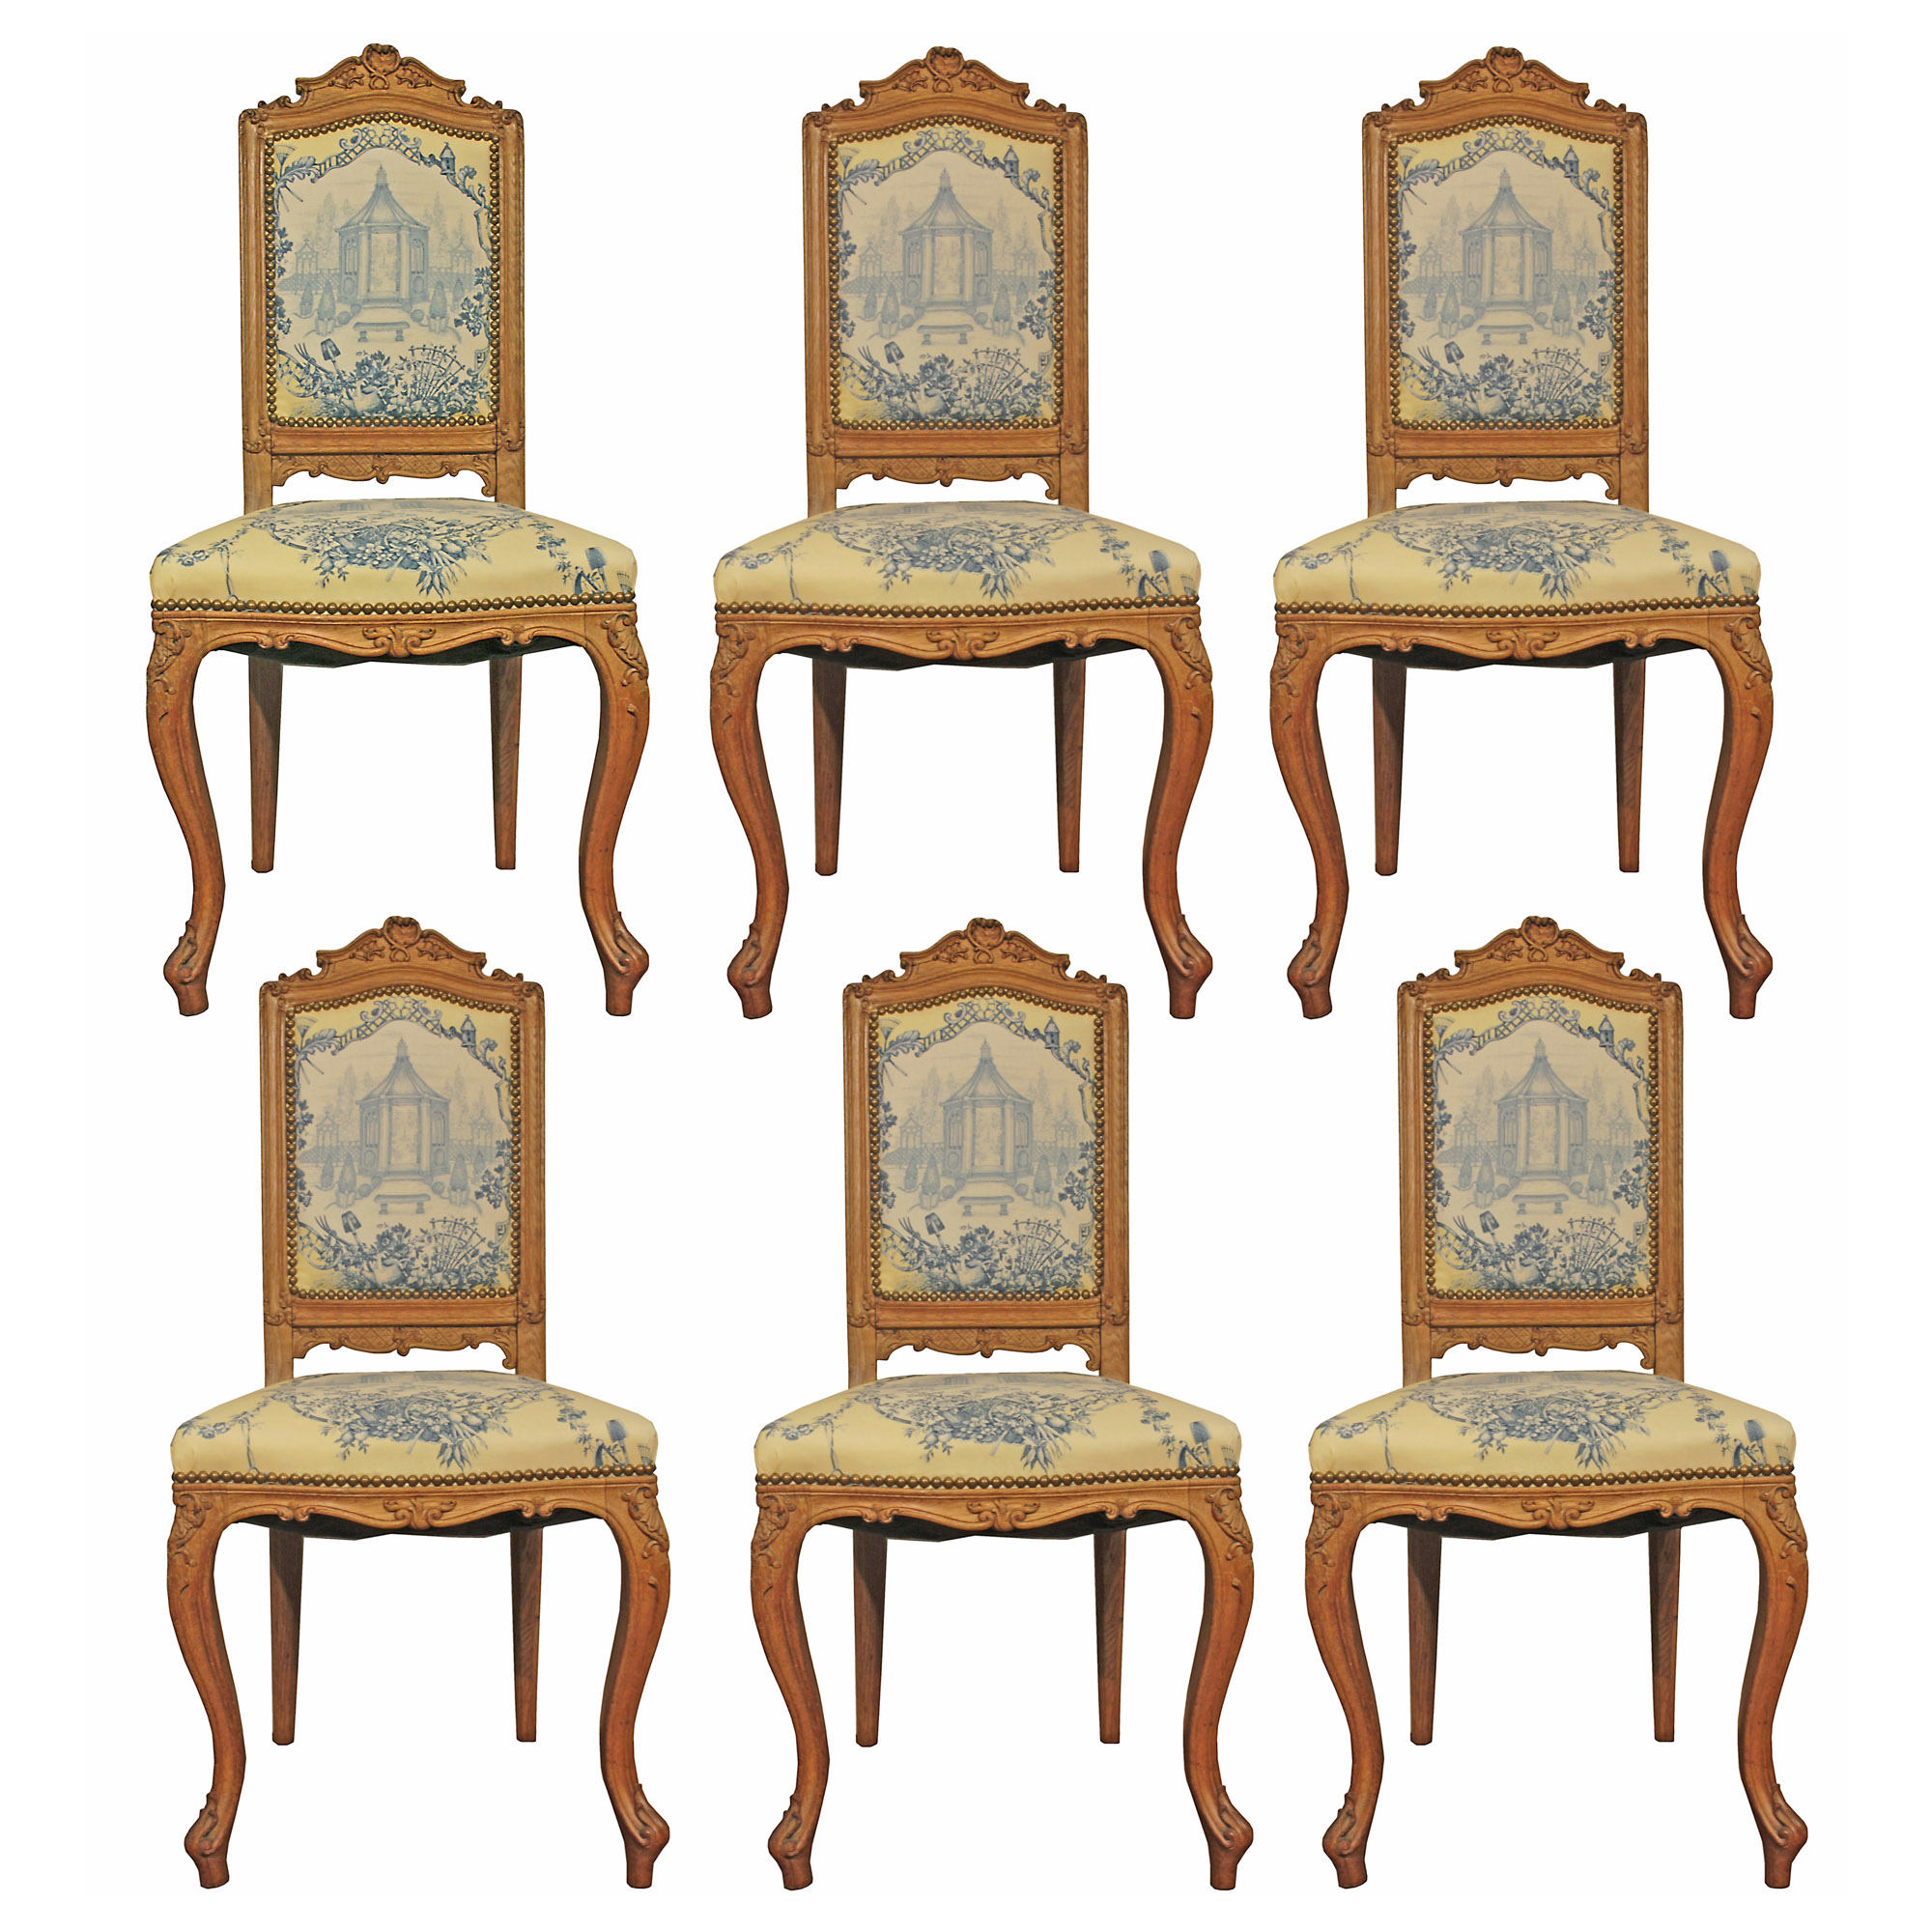 Remarkable A Set Of Six French 19Th Century Louis Xvi St Carved Beachwood Dining Chairs Gamerscity Chair Design For Home Gamerscityorg